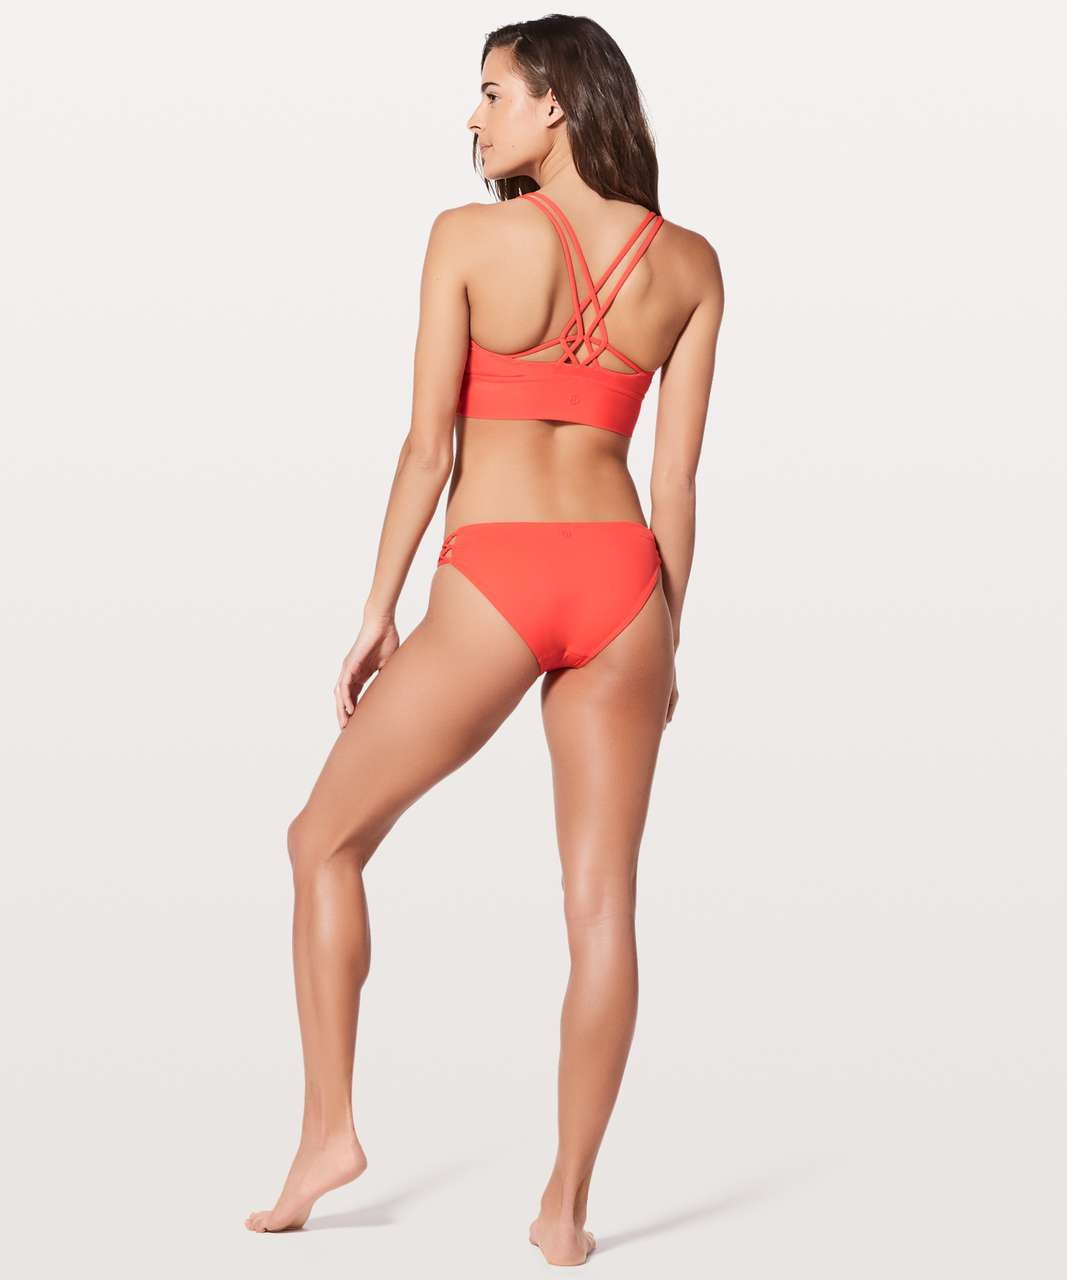 3aaa60c13 Lululemon Coastline Top - Red Orange - lulu fanatics